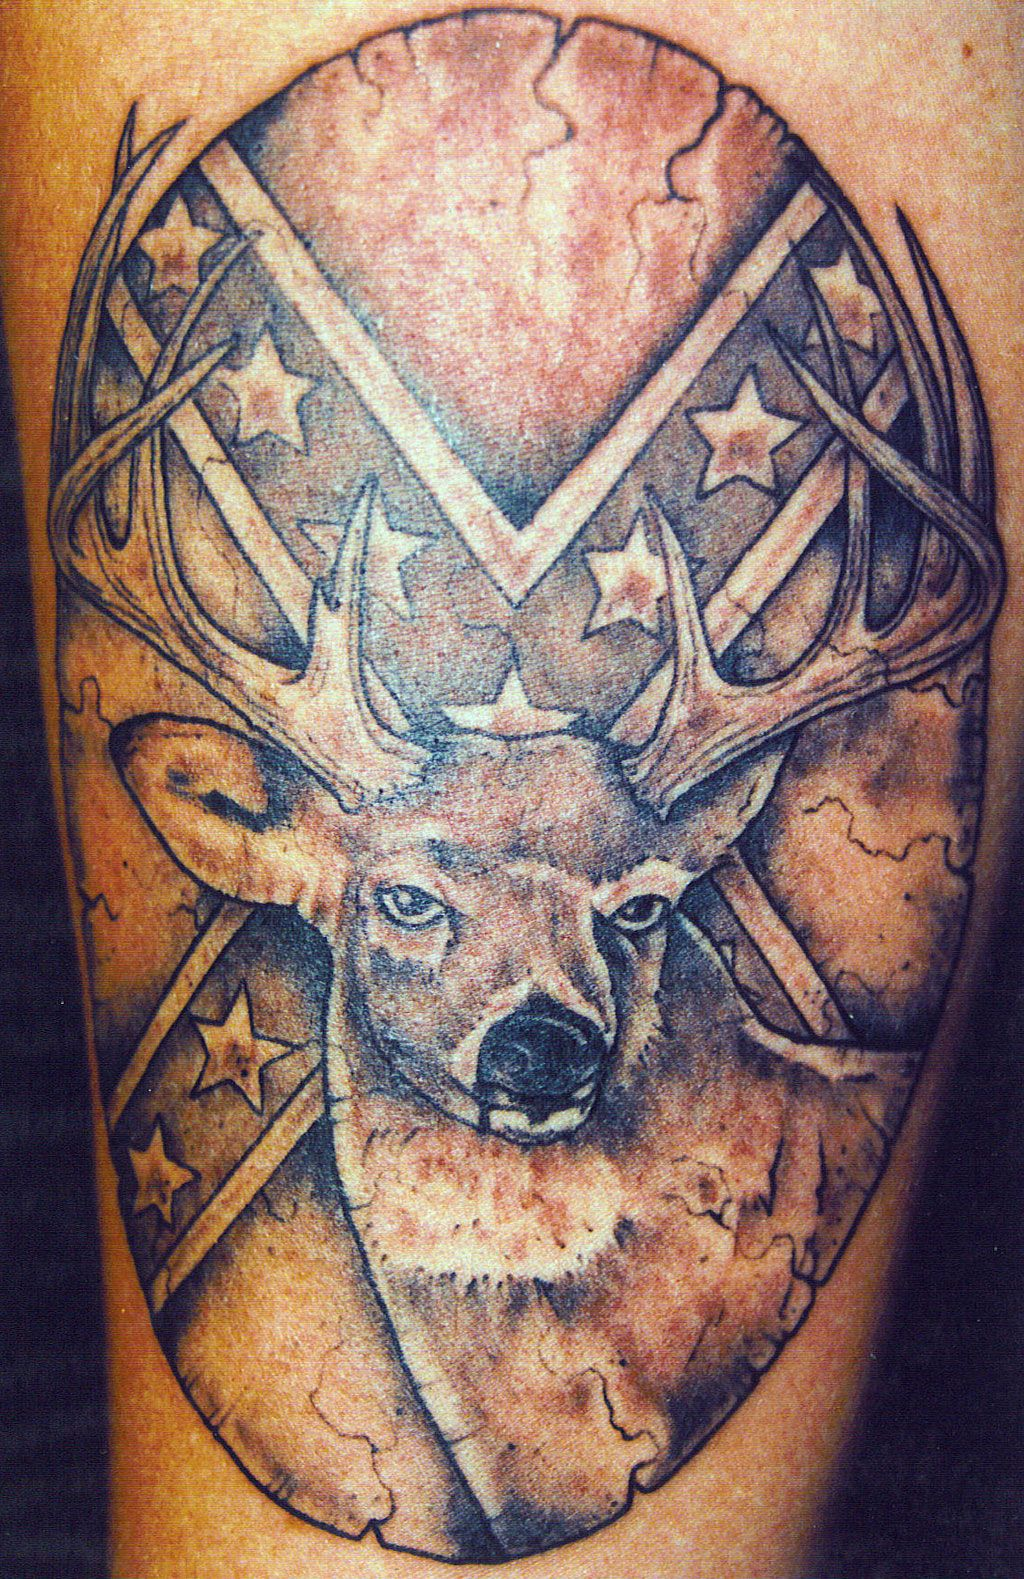 Deer Hunting Tattoos Designs Cool Tattoos Deer Tattoo Designs Hunting Tattoos Country Tattoos